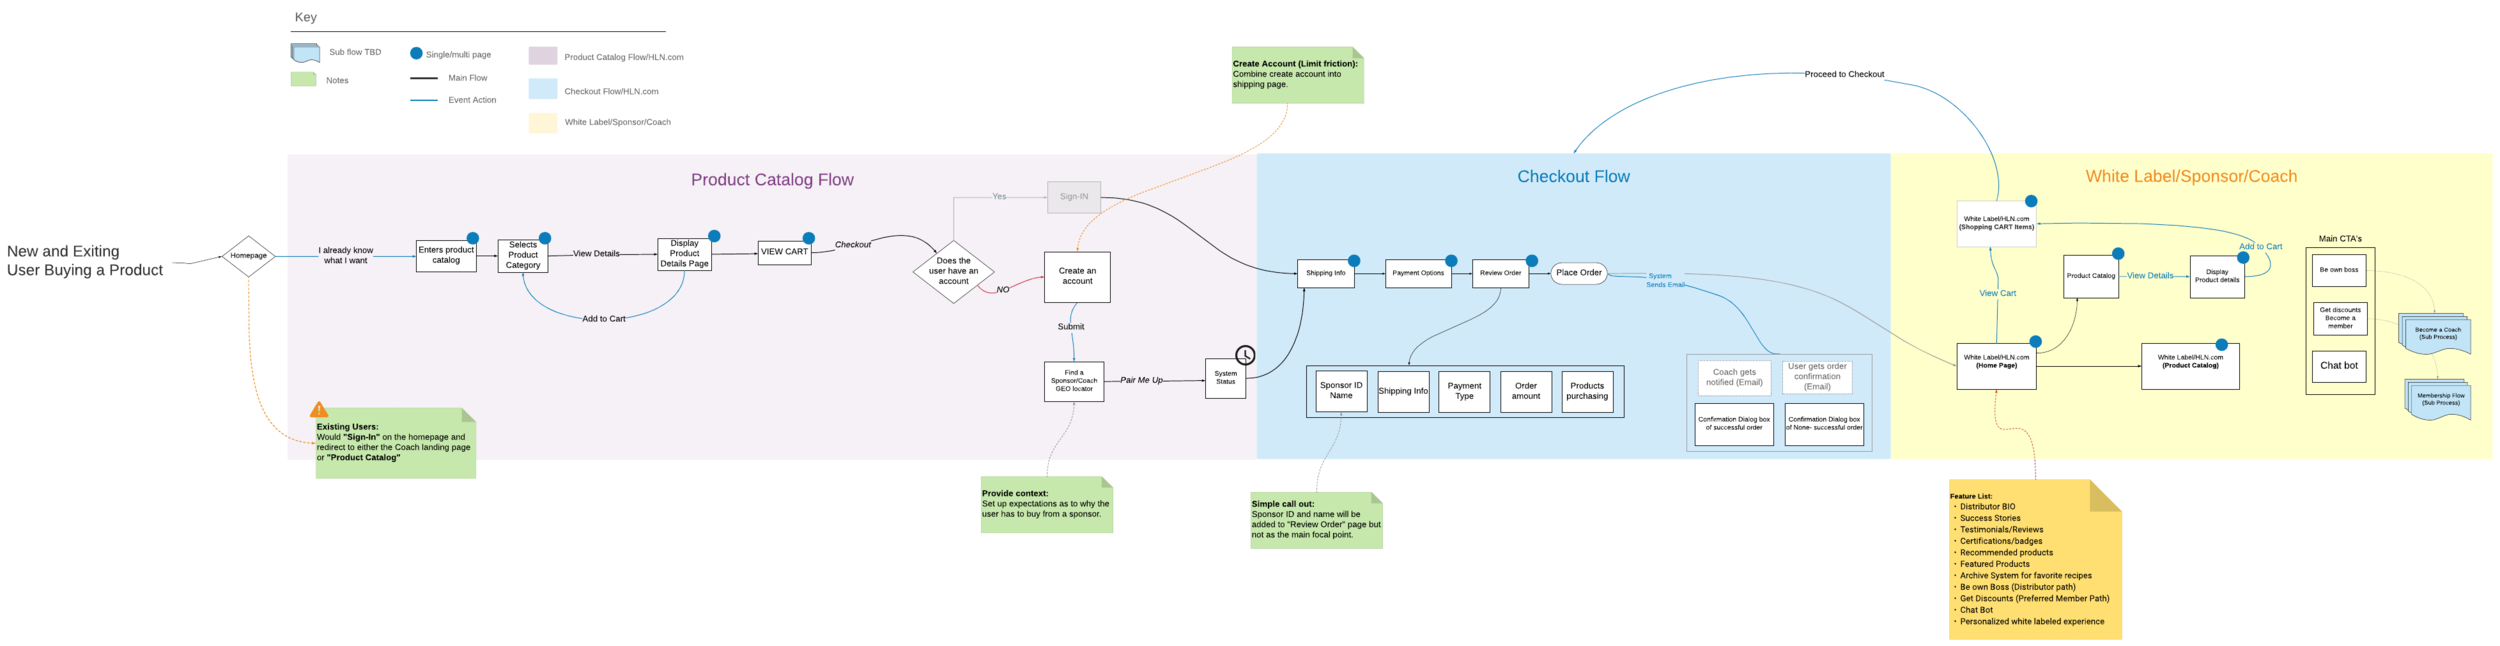 These process flows only represent 2 of the many flows that were created.